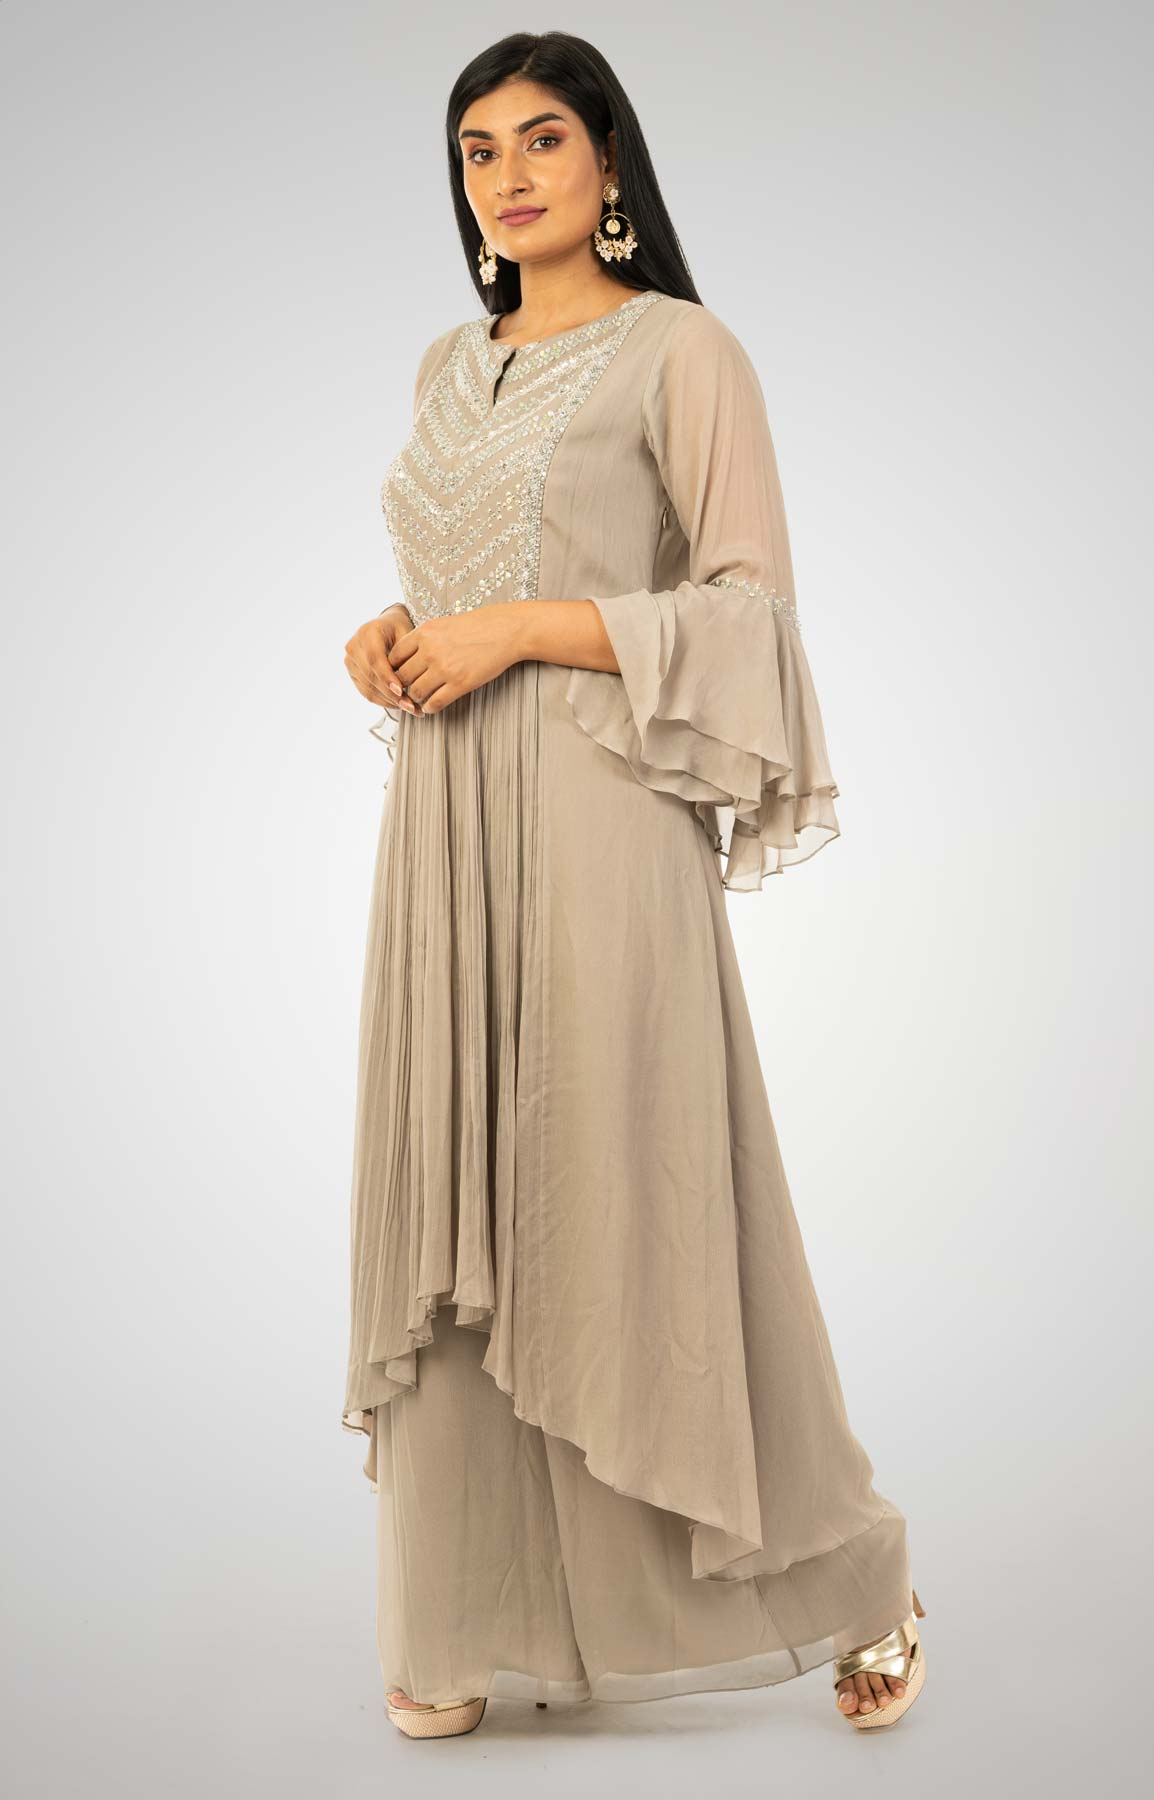 Glided Beige Crepe Palazzo Suit With A-Symmetrical A-line Kurta Adorned With Moti And Bead Work – Viraaya By Ushnakmals